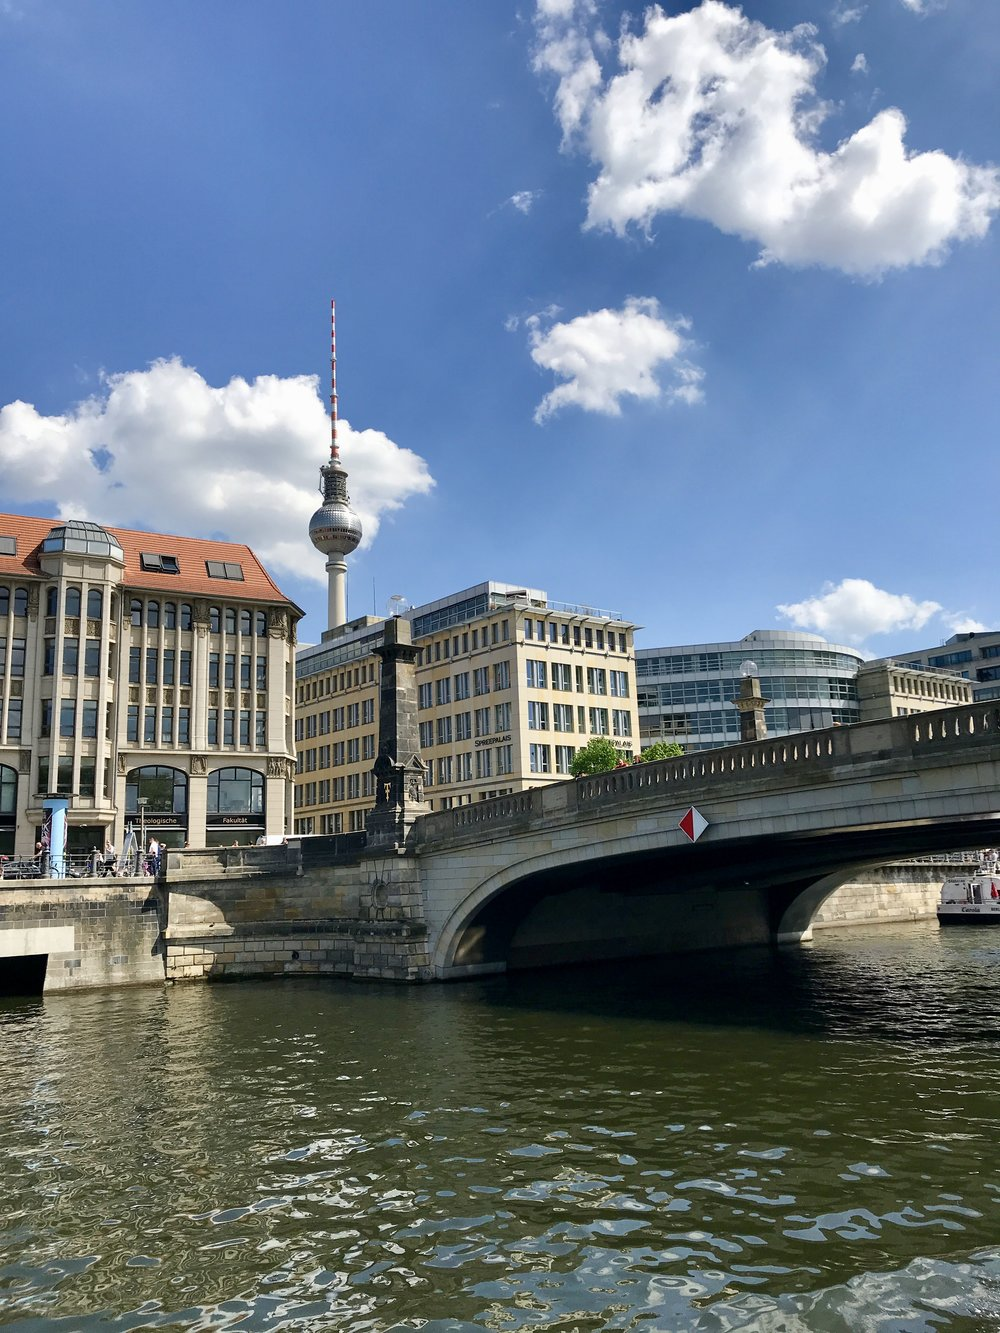 On a sunny day, cruise along the river Spree. You can eat dinner in the TV Tower you see in the background. It rotates every 30 minutes.